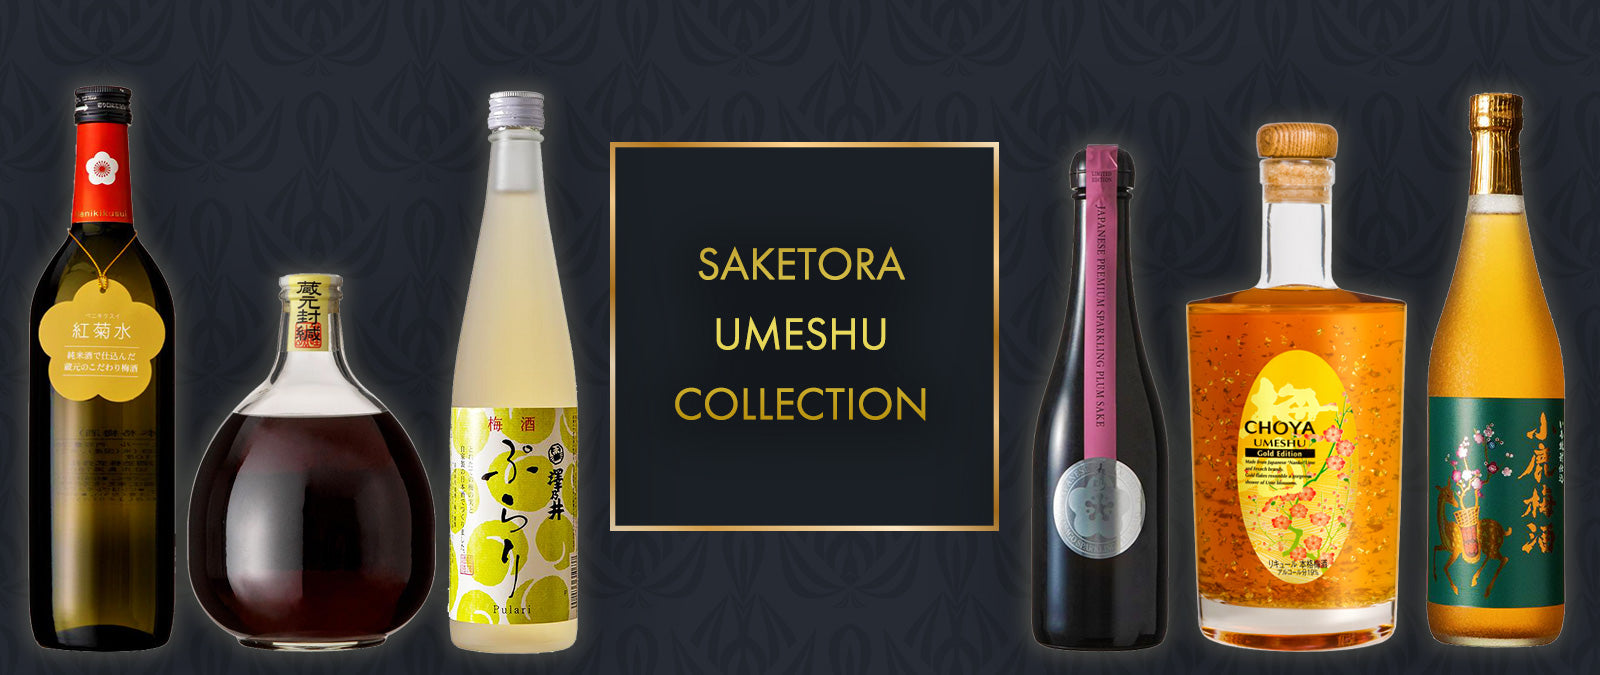 Saketora - Saketora Umeshu Collection